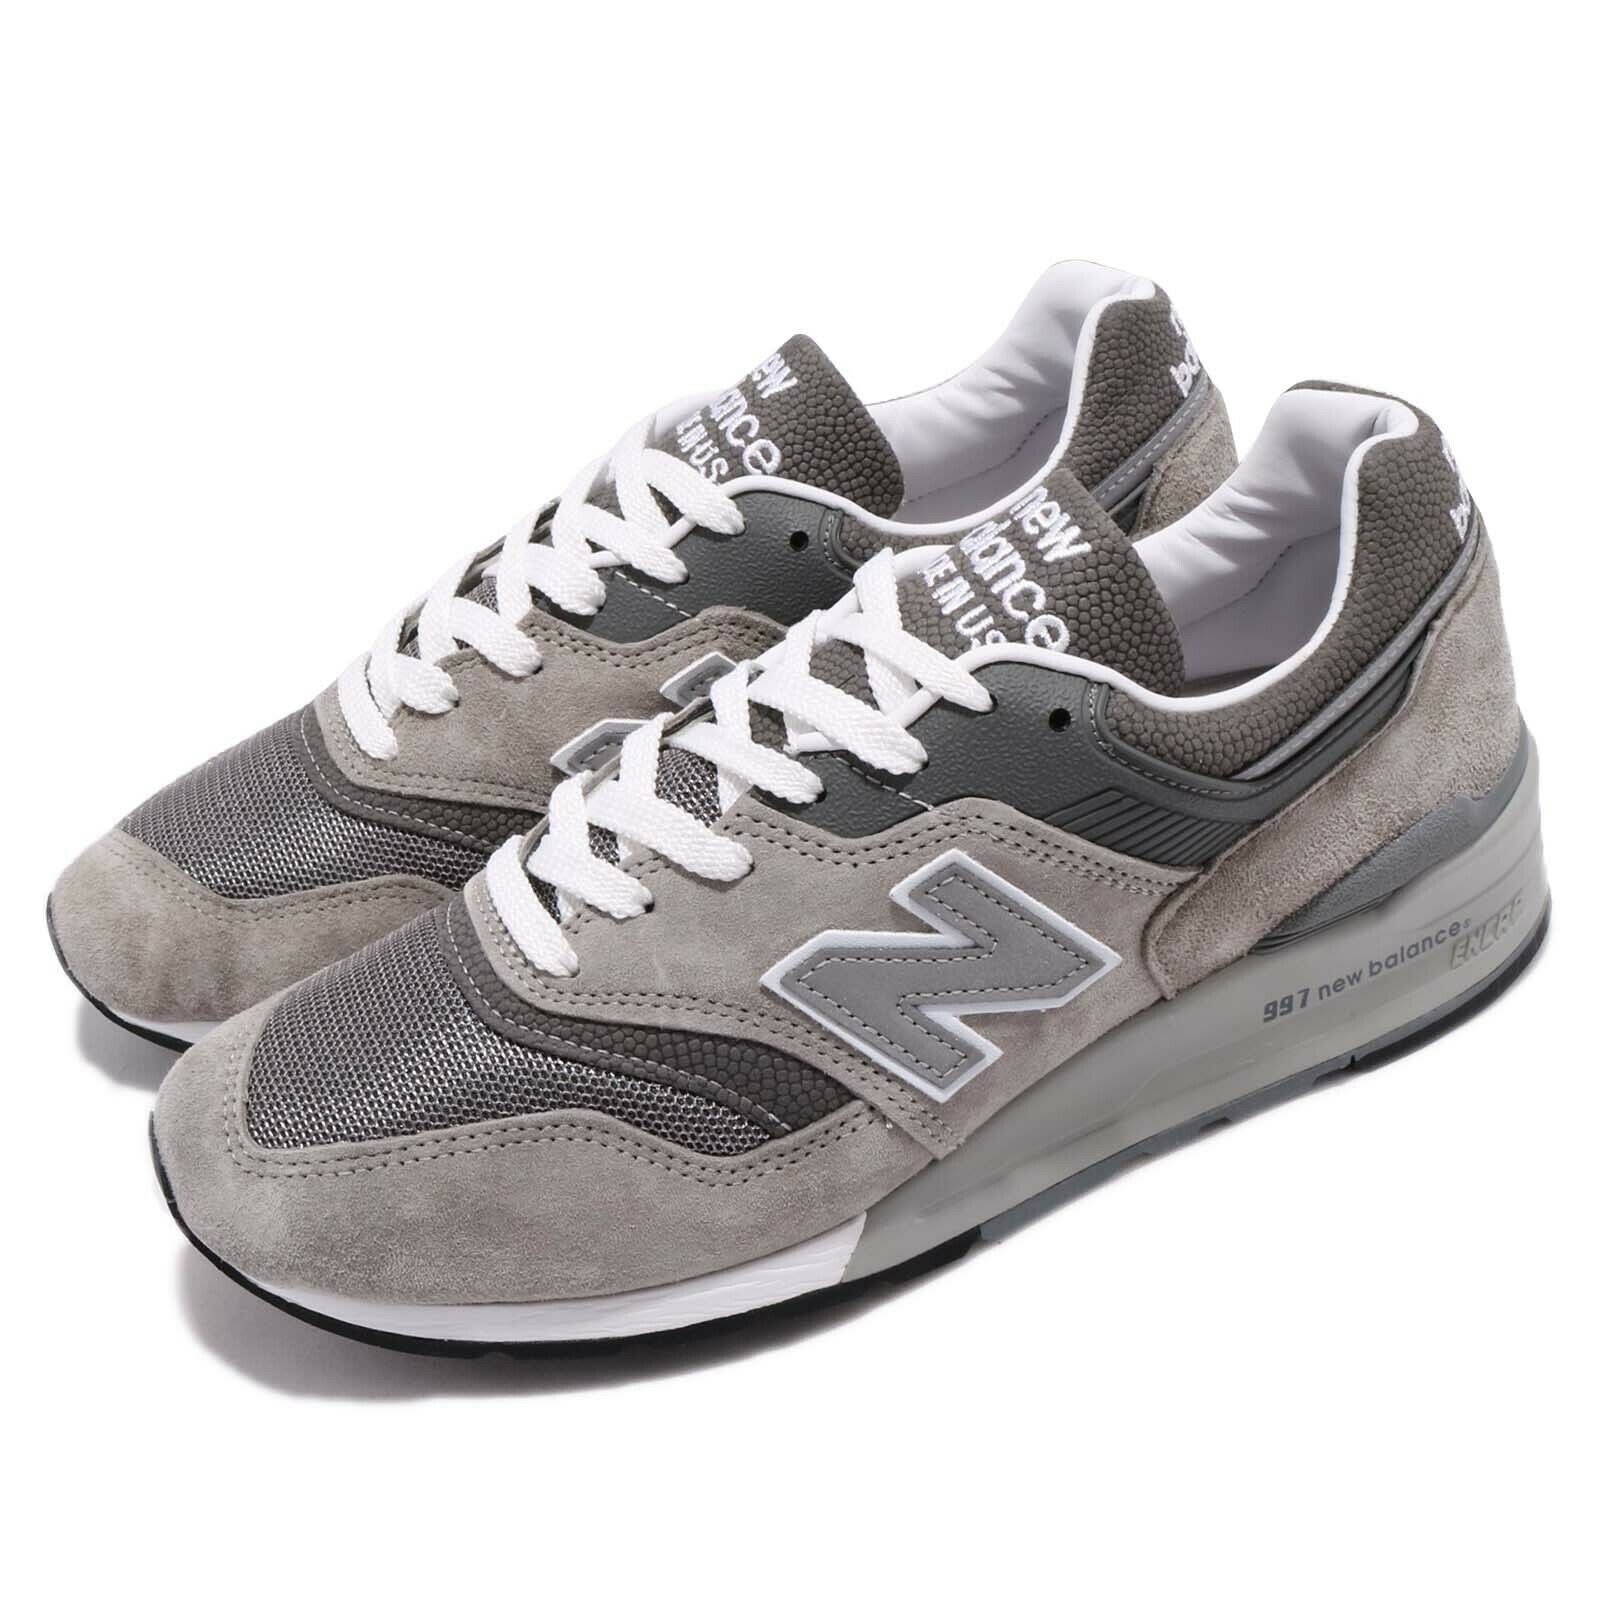 New Balance M997GY D Made In USA gris Men mujer Running zapatos zapatillas M997GYD